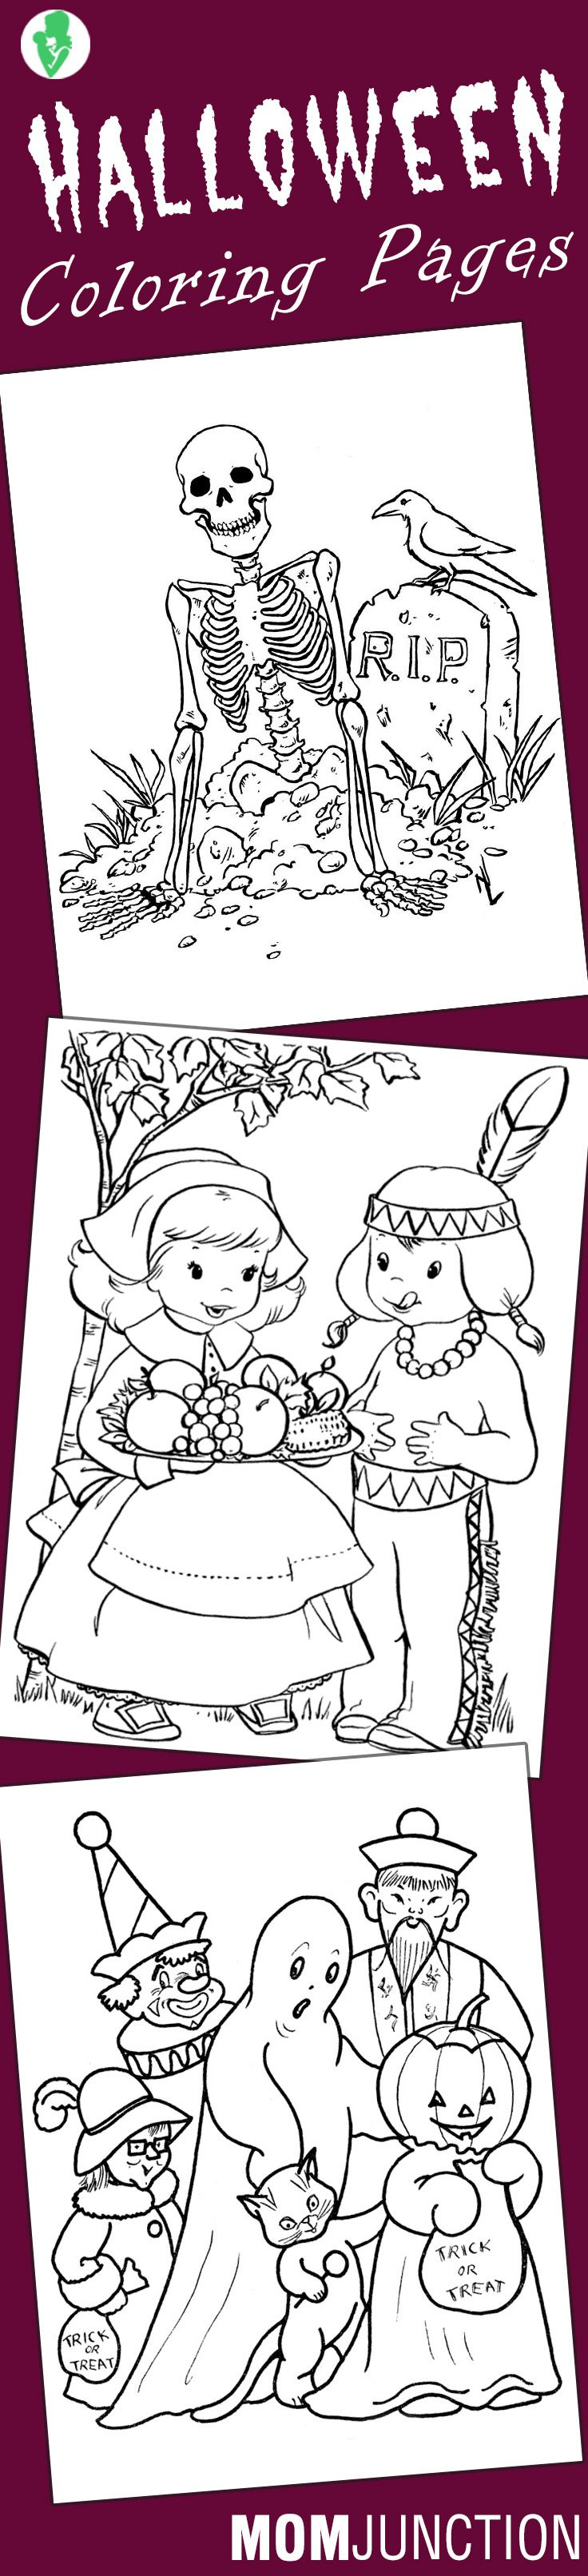 3238 best coloring pages images on pinterest coloring books